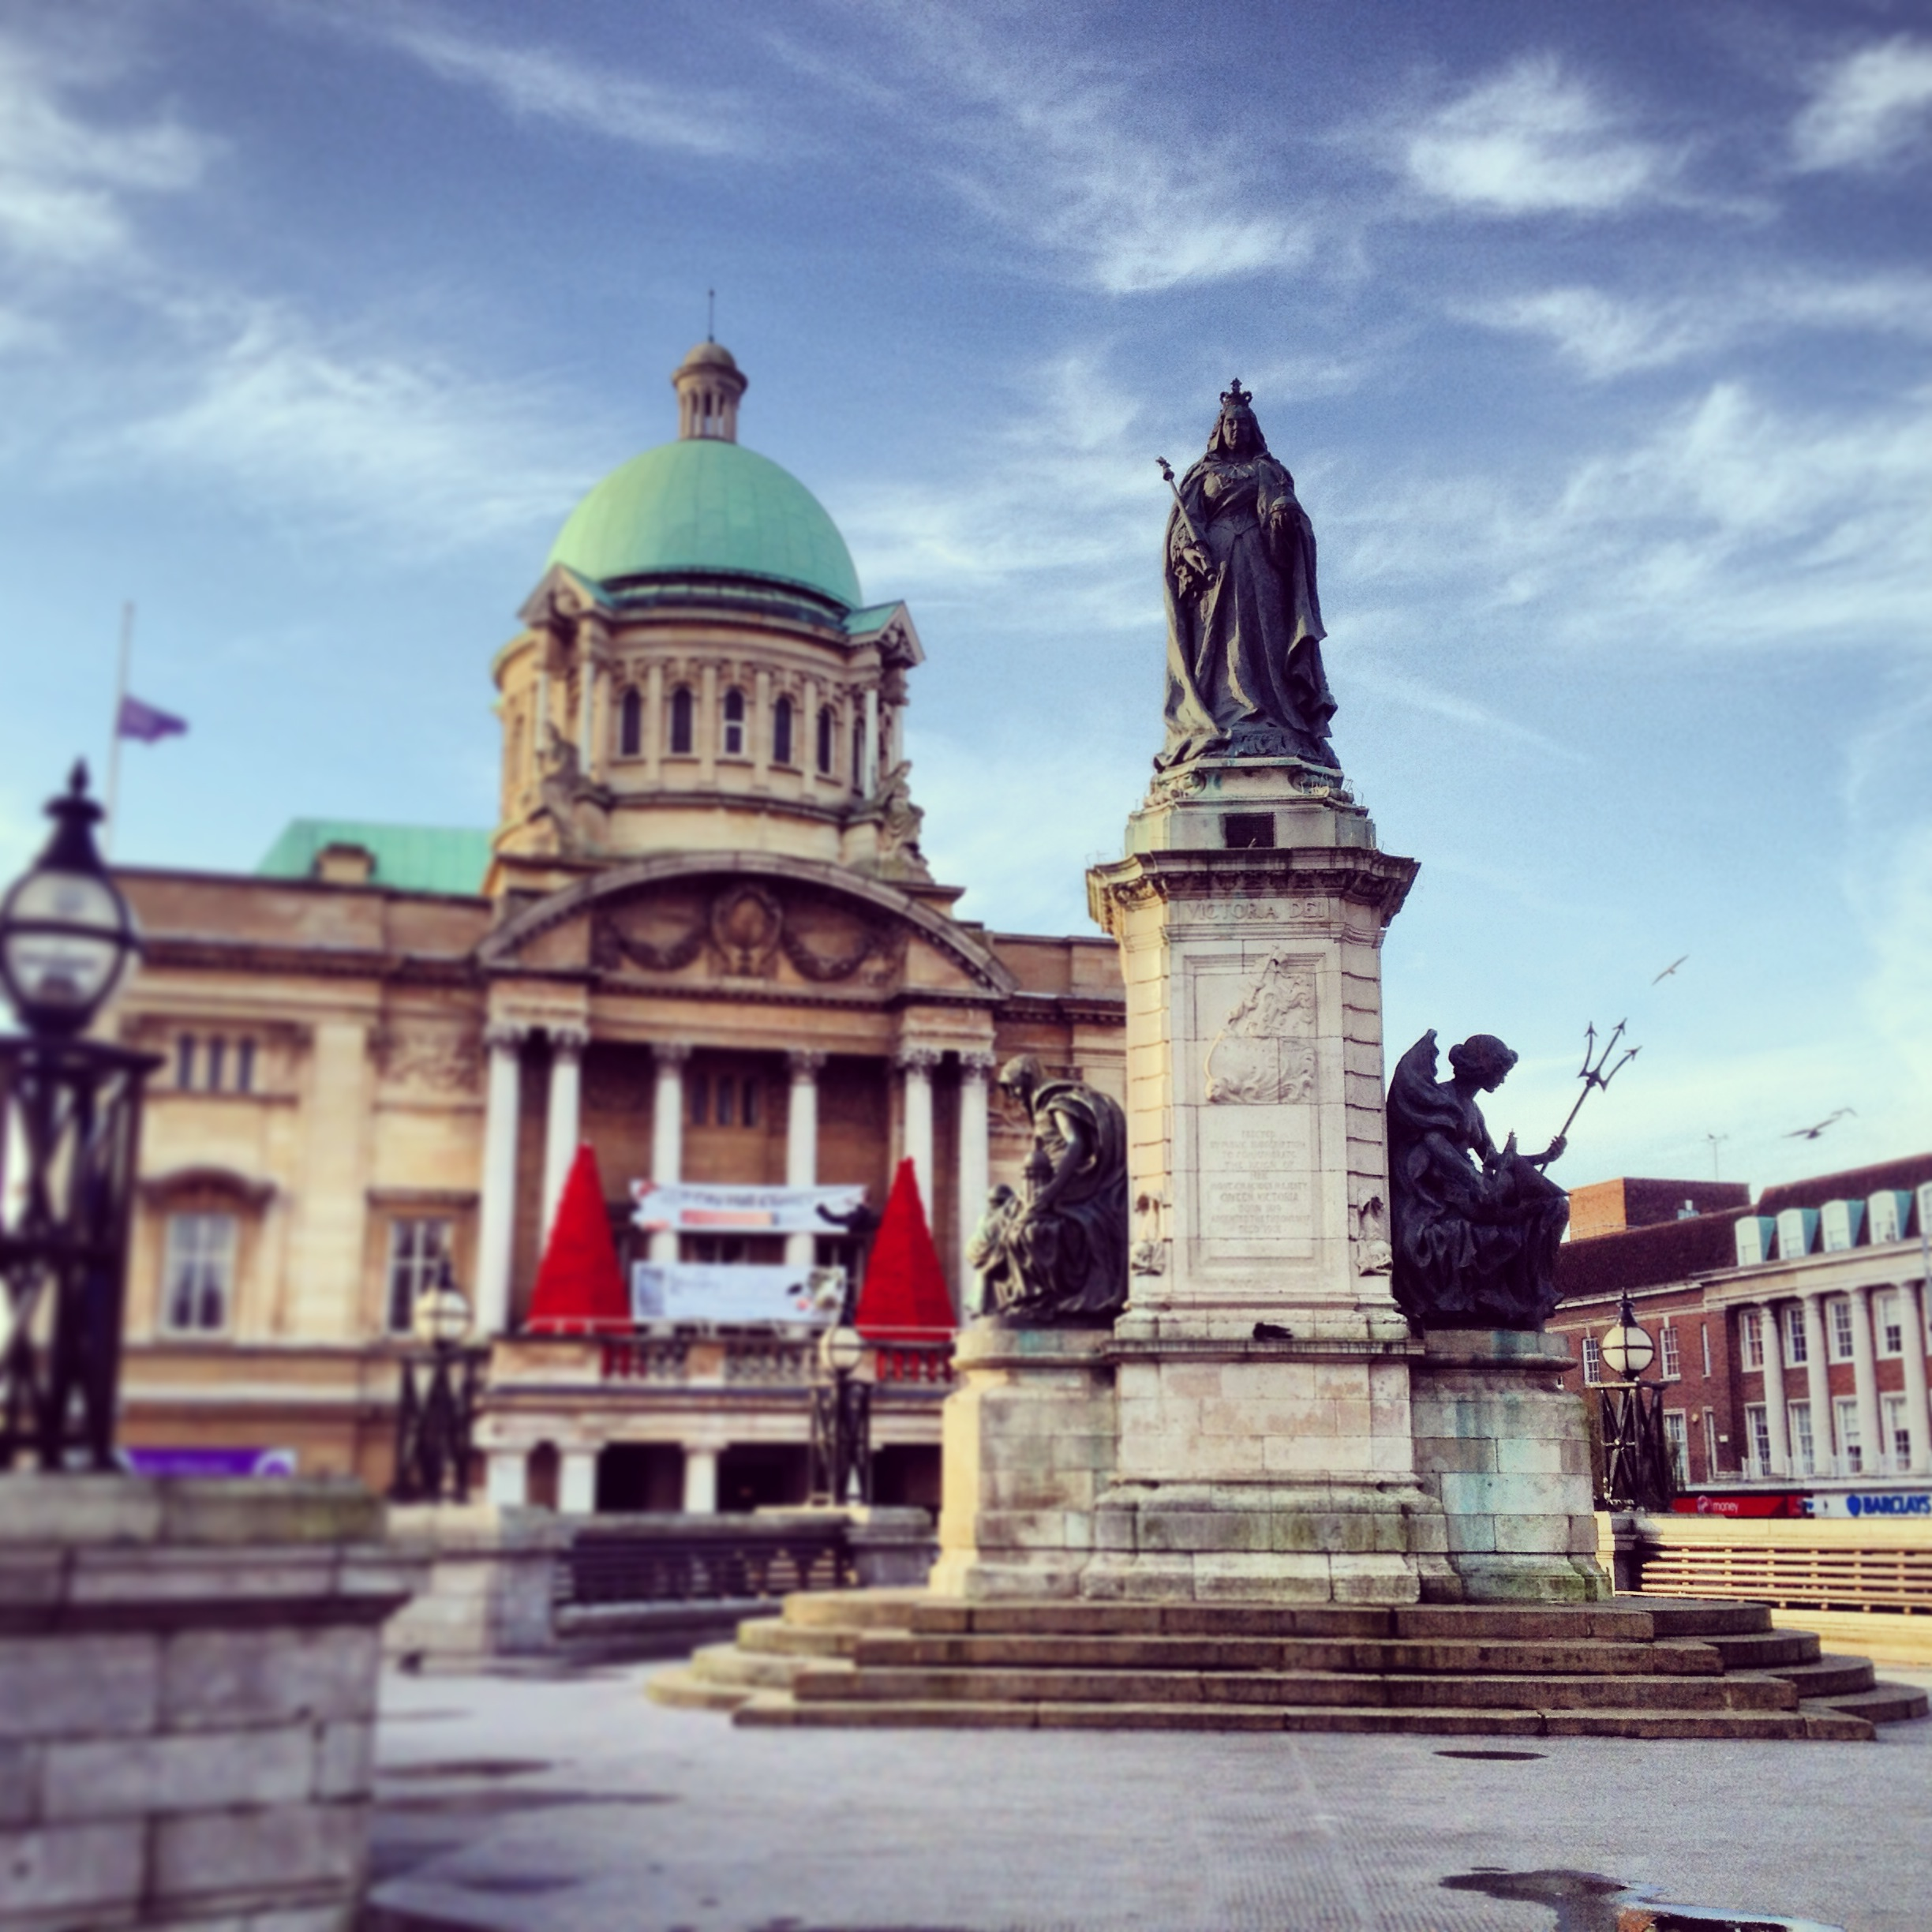 Funky Friday Photo: Queen Victoria Stands Proud in Hull, UK